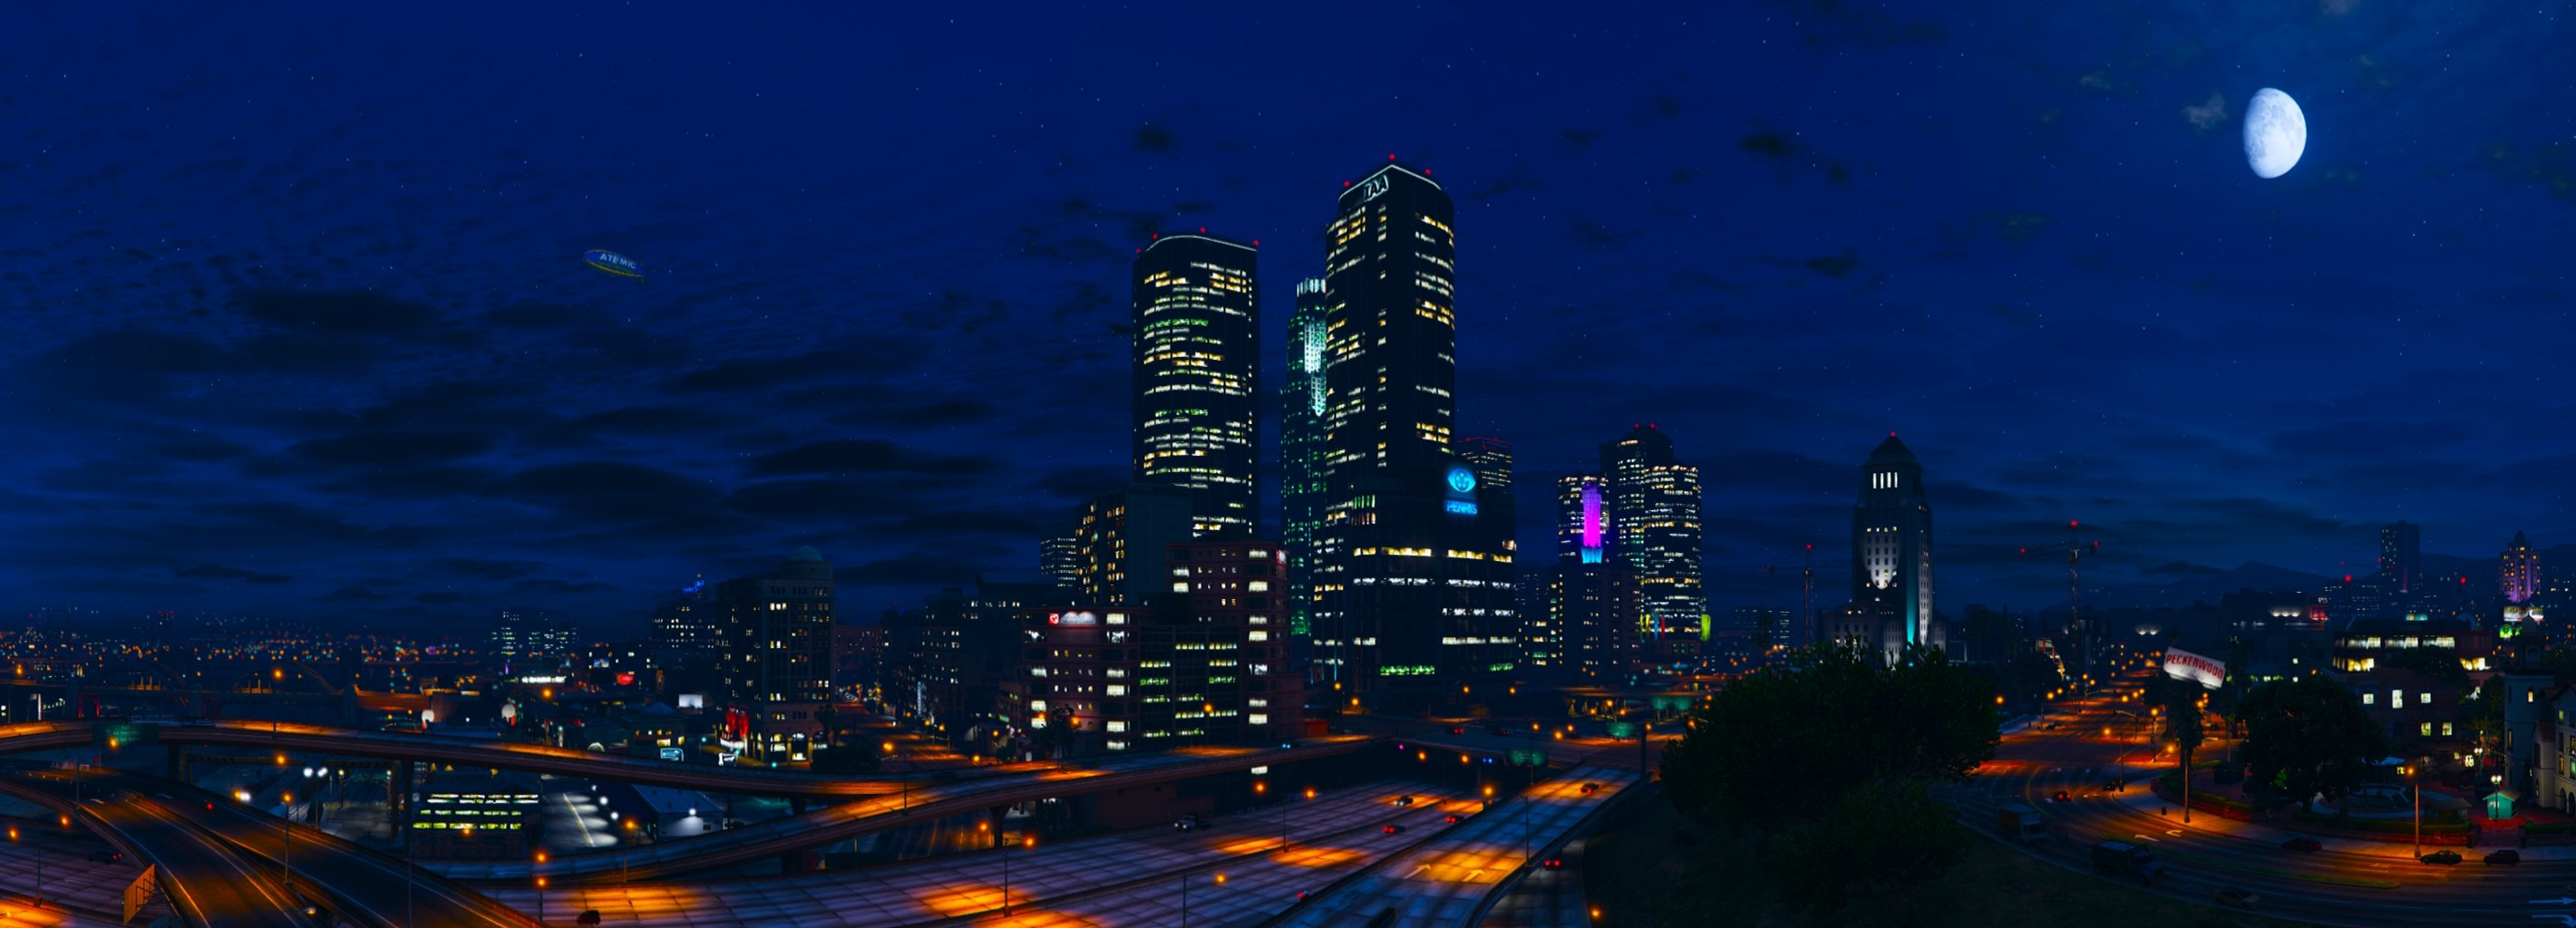 17 Los Santos HD Wallpapers Background Images 2841x1024